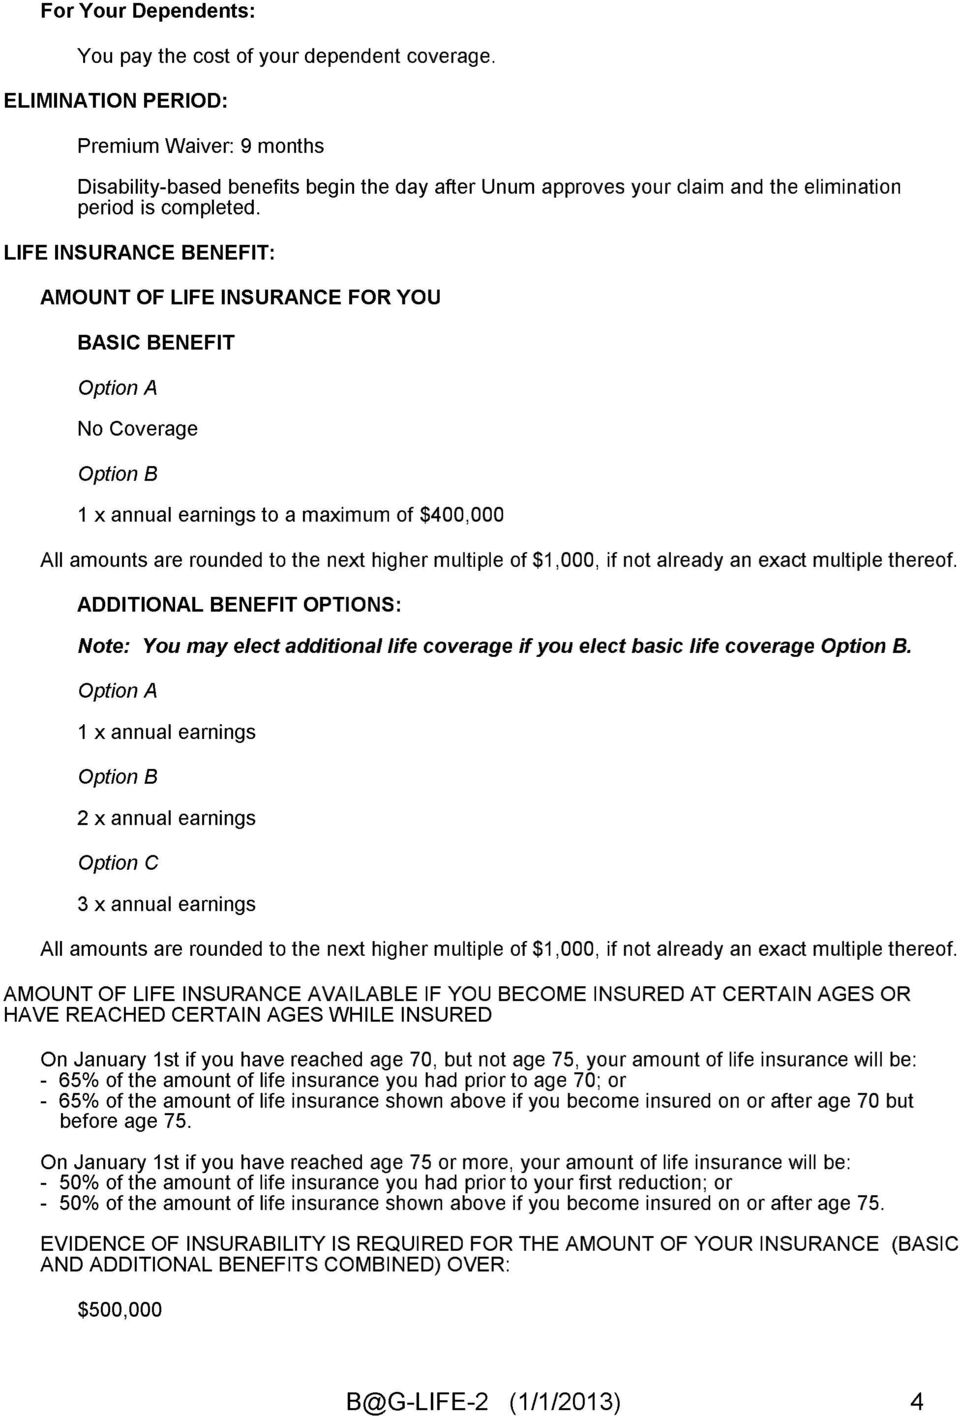 LIFE INSURANCE BENEFIT: AMOUNT OF LIFE INSURANCE FOR YOU BASIC BENEFIT Option A No Coverage Option B 1 x annual earnings to a maximum of $400,000 All amounts are rounded to the next higher multiple